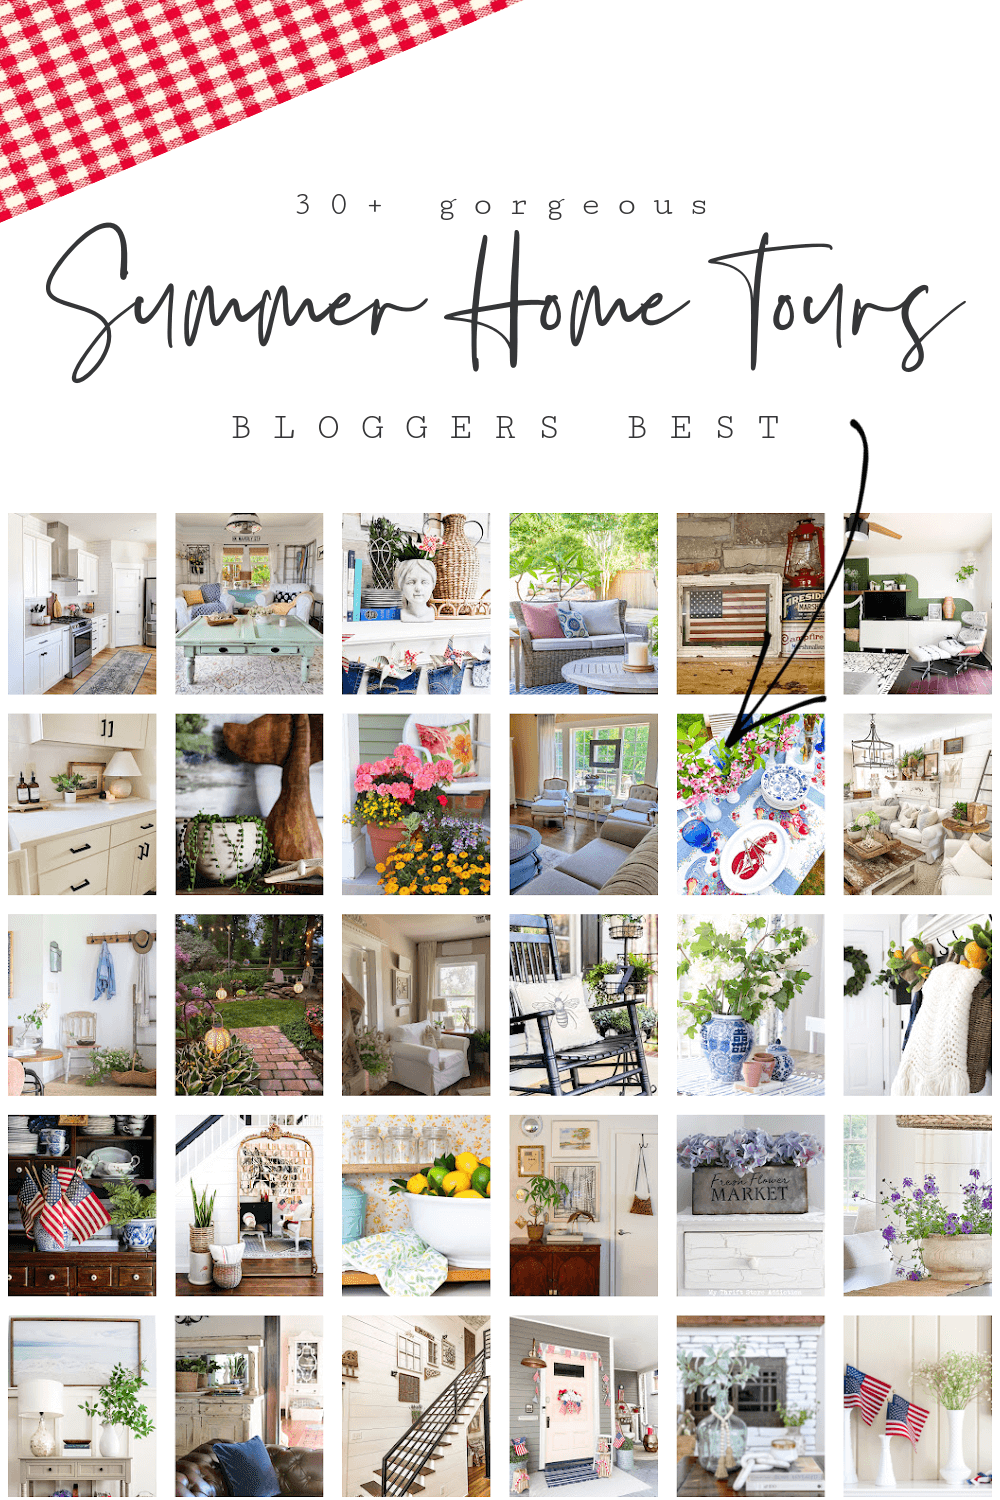 Pinterest graphic with collage of interior thumbnails for blogger best summer home tours